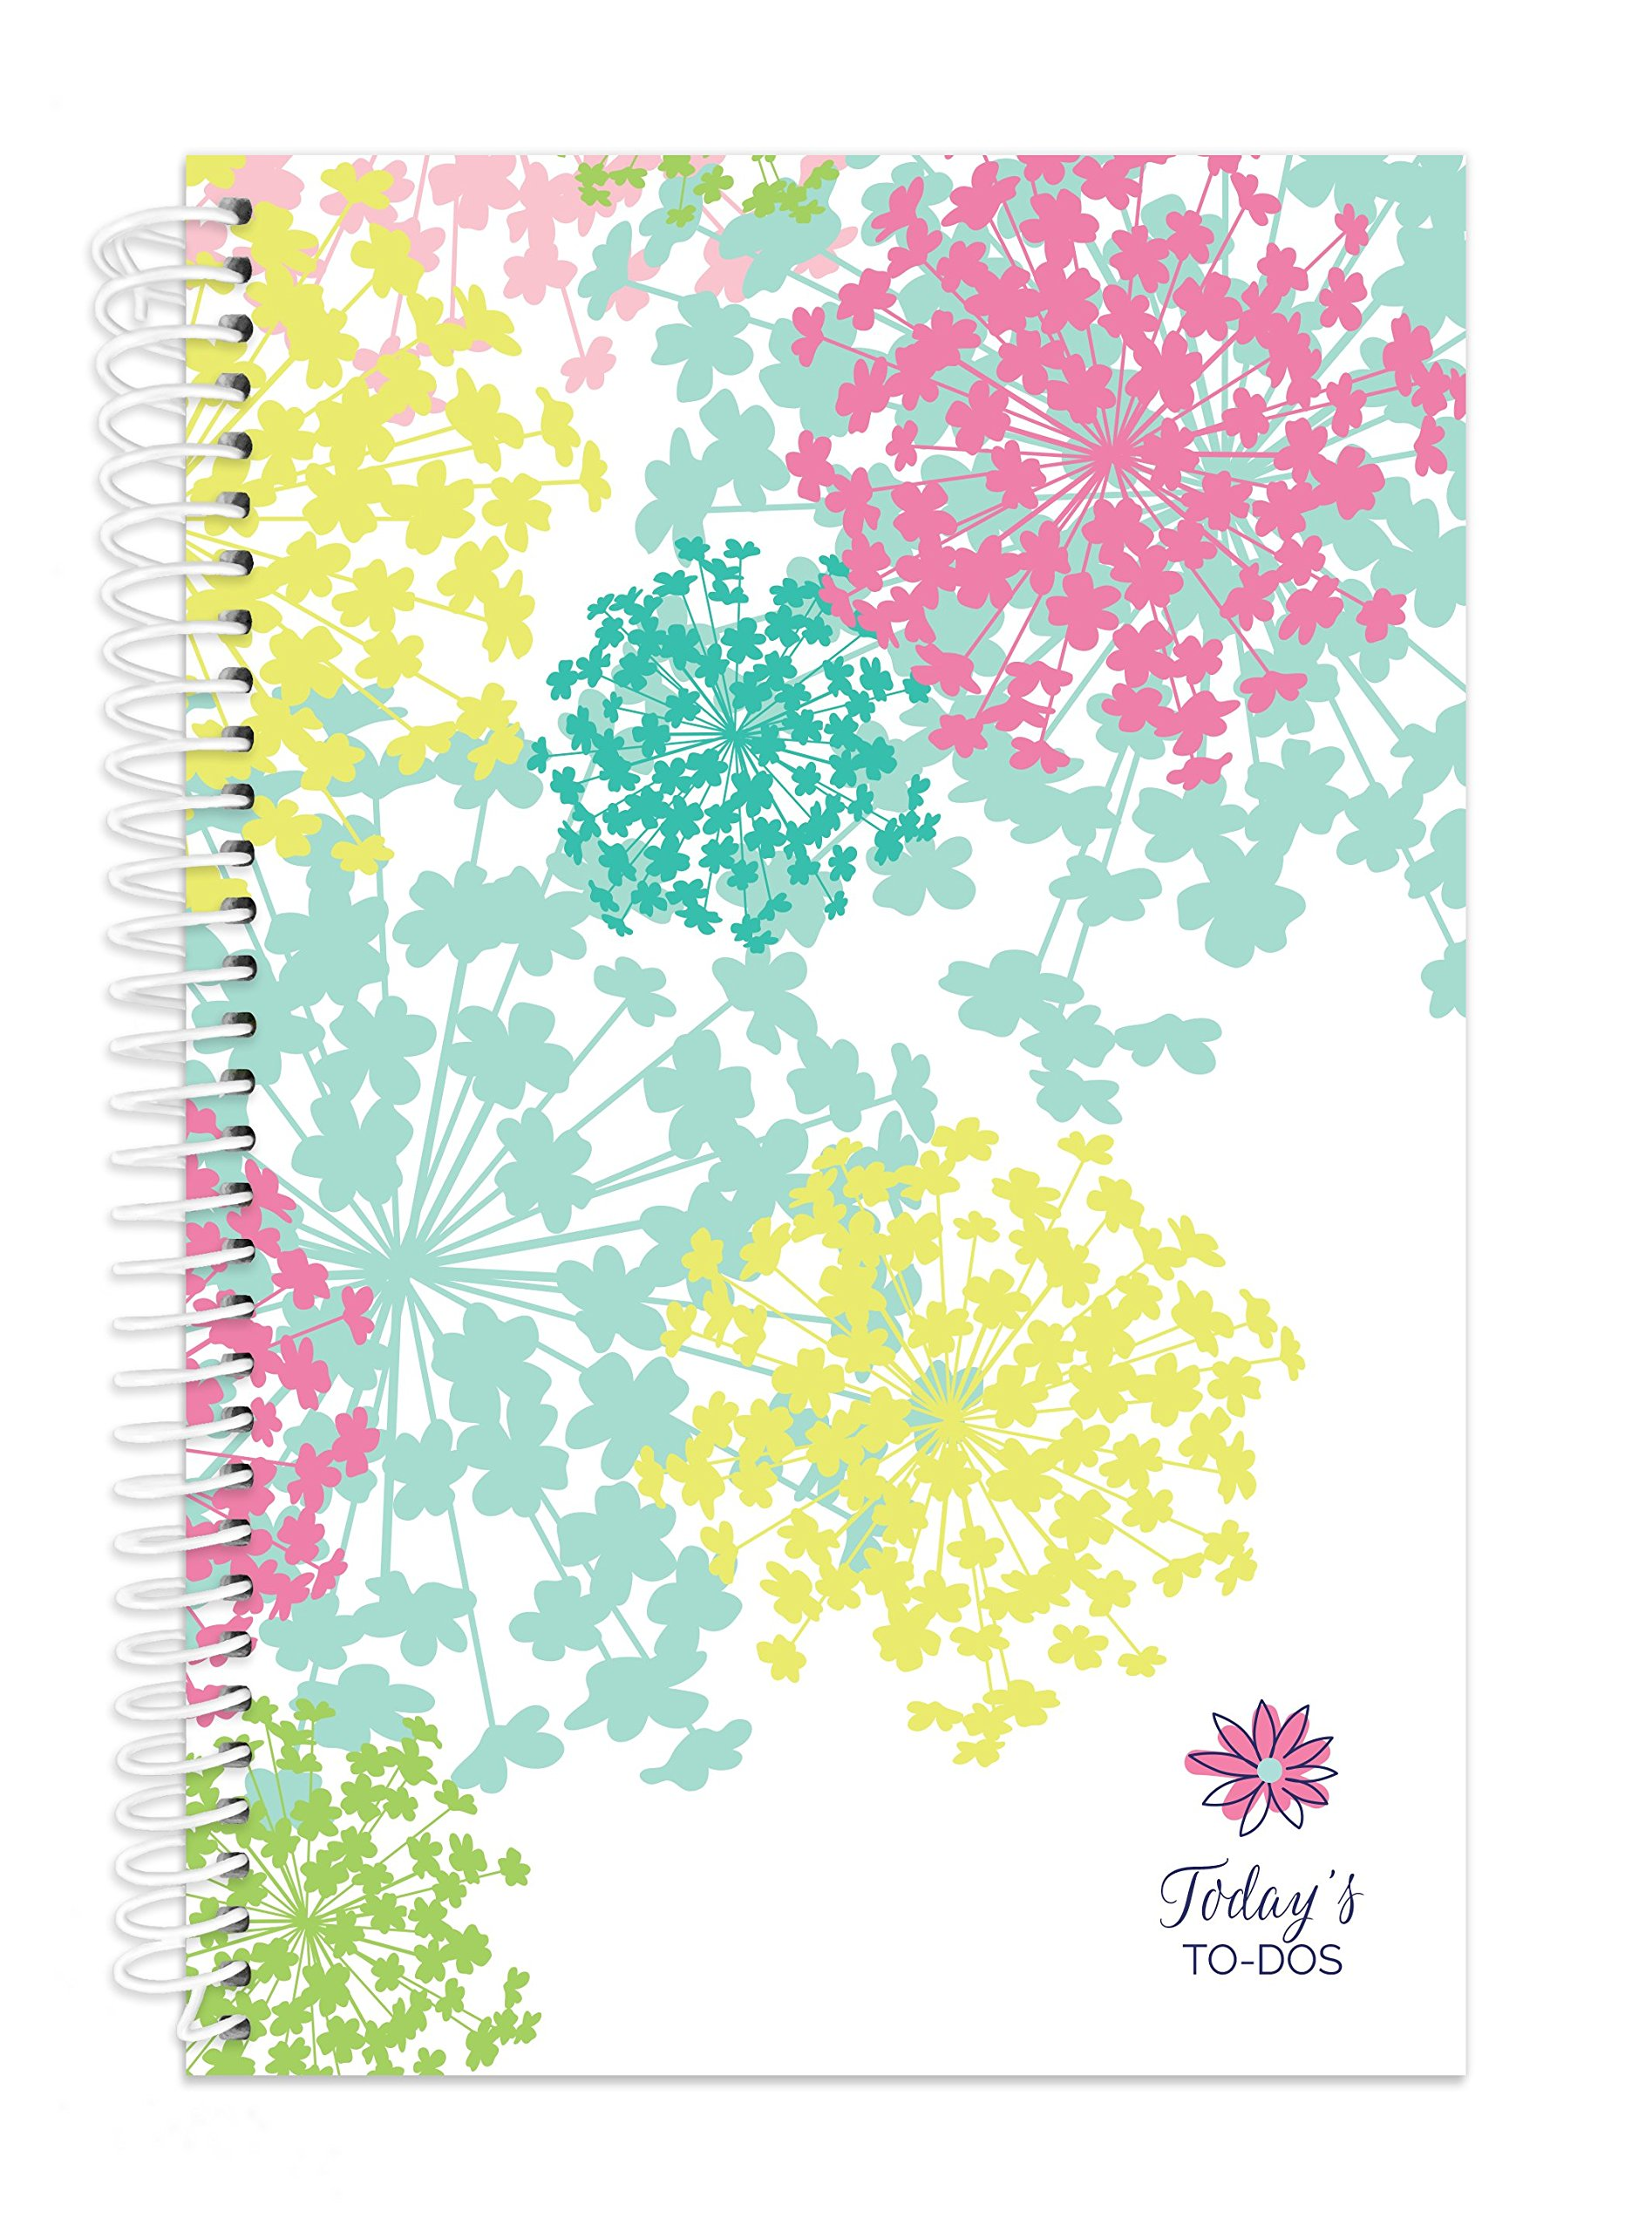 bloom daily planners Bound To-Do List Book - Planning System Tear Off To Do Pads - UNDATED Daily Planner To Do Pad 6'' x 8.25'' - Bloom